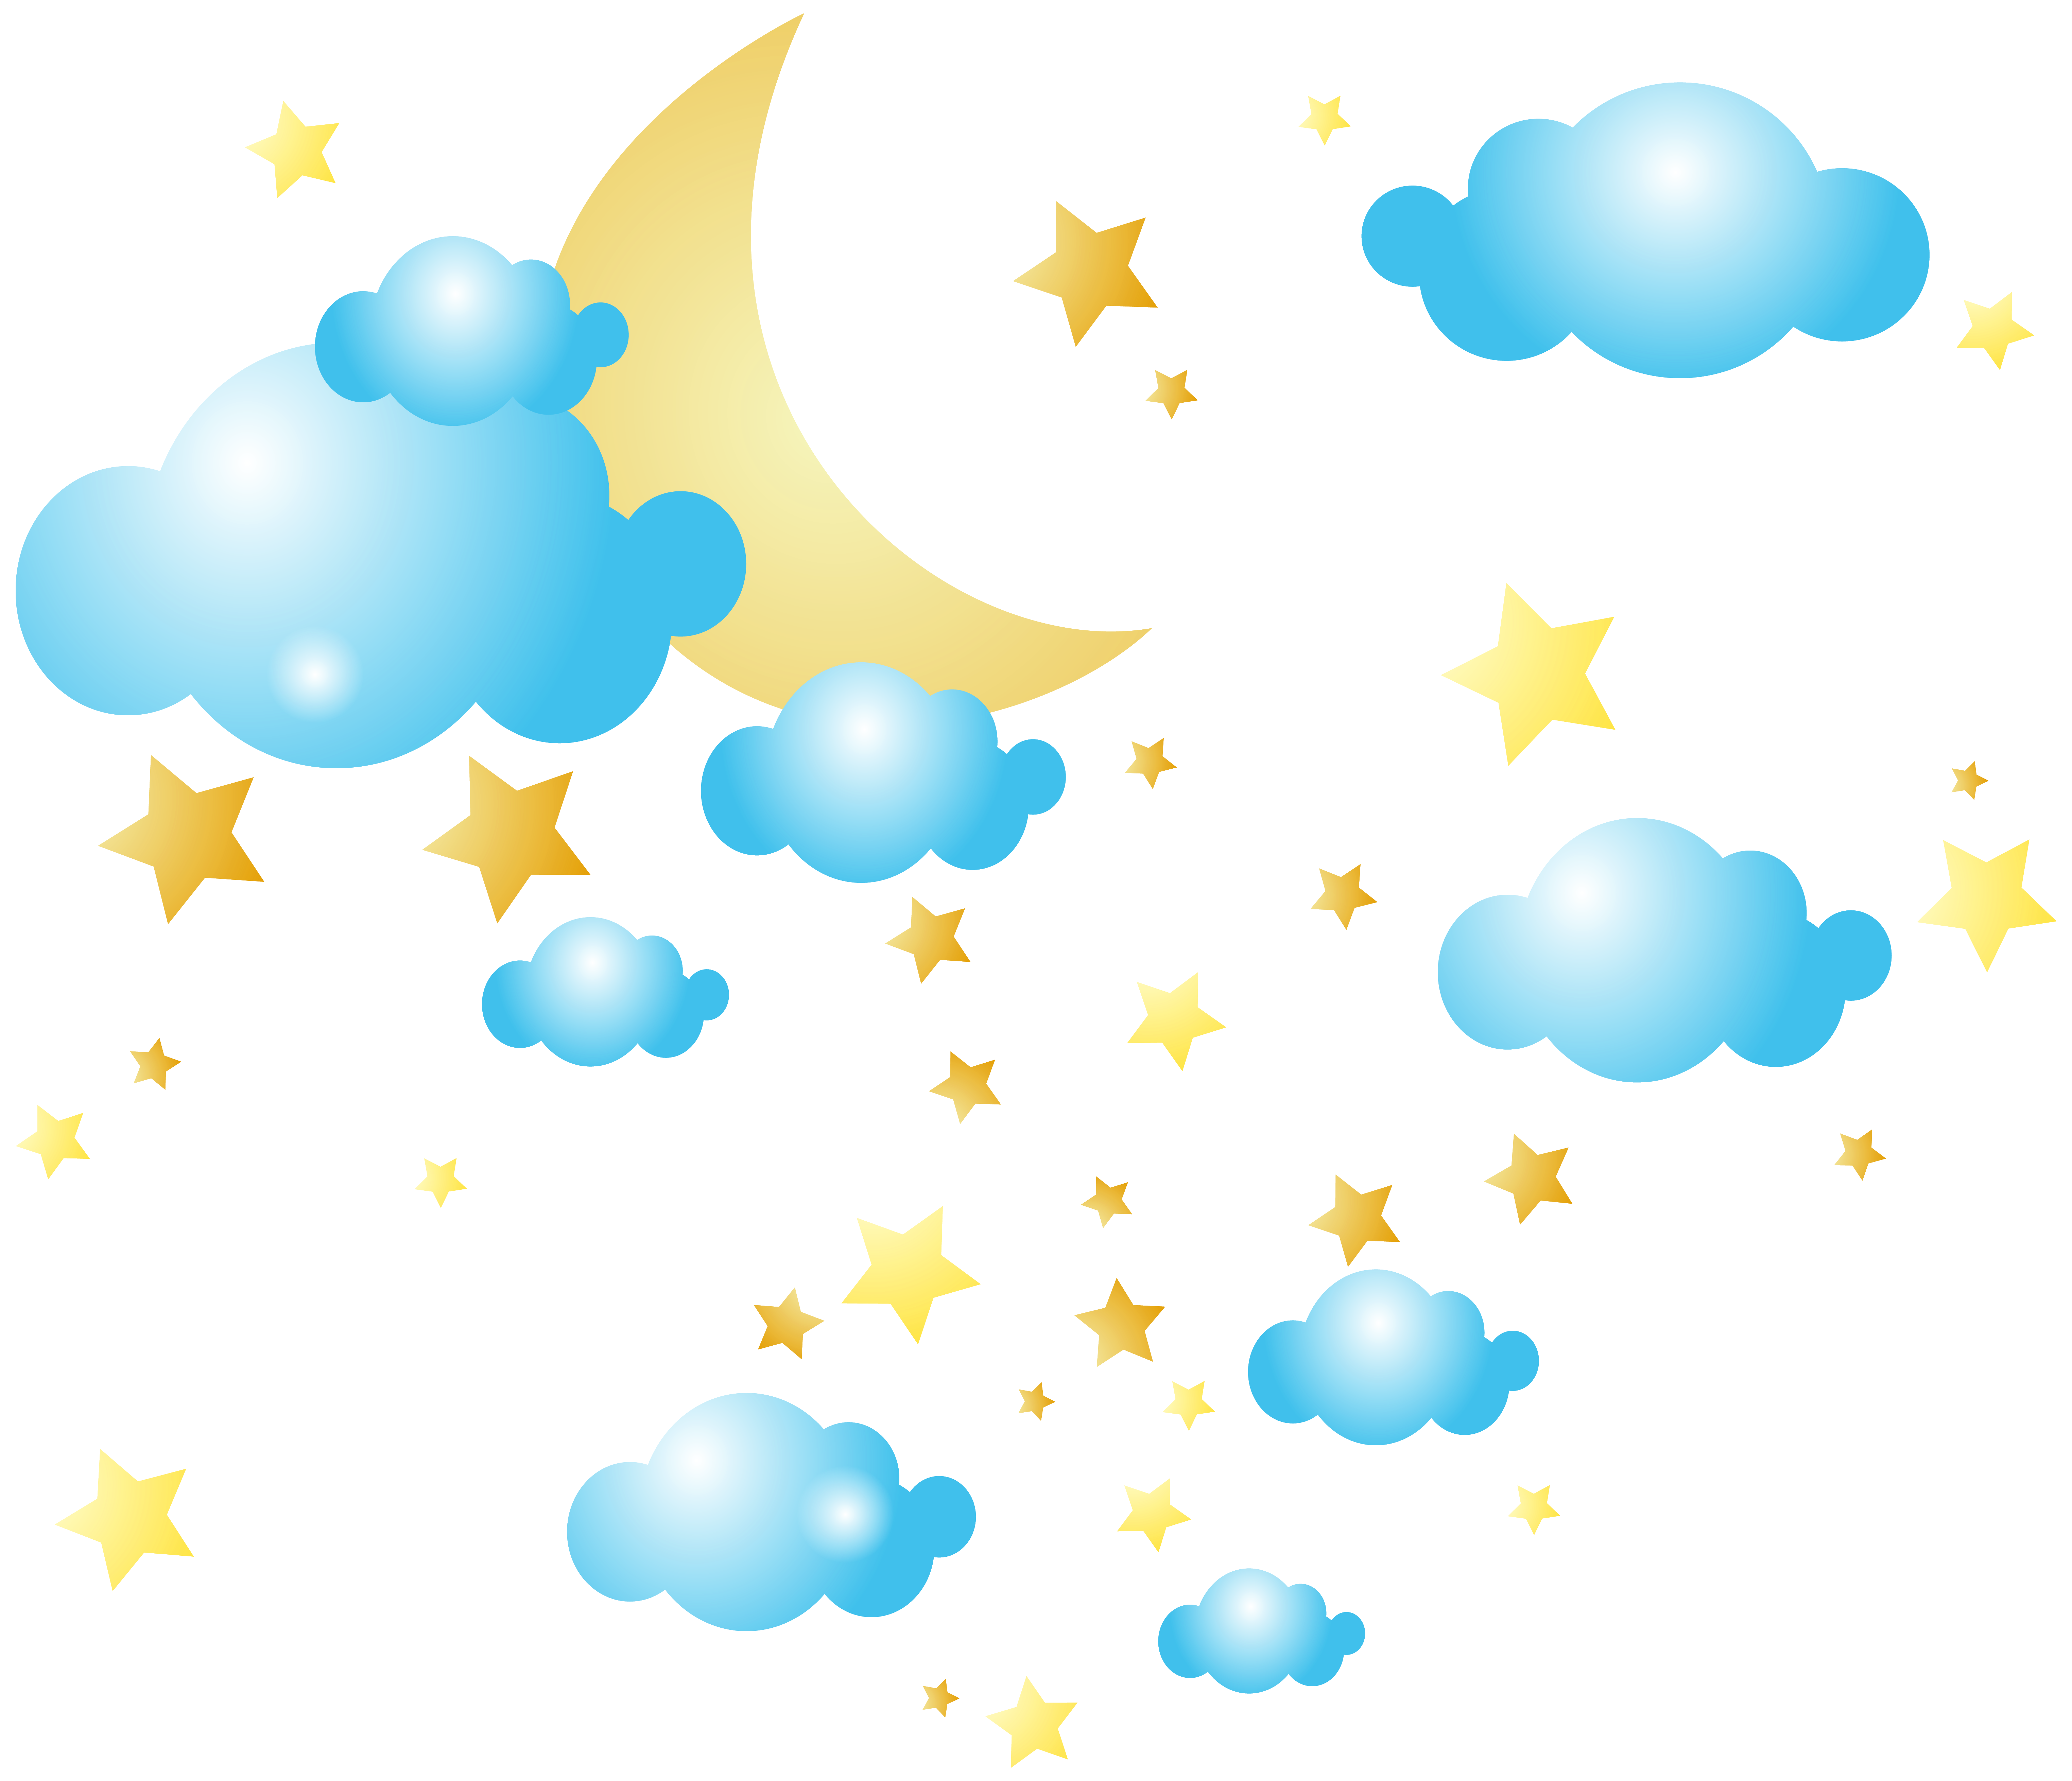 Star moon clipart image freeuse download Cloud Star Moon Clip art - Moon Clouds and Stars PNG Clip-Art Image ... image freeuse download